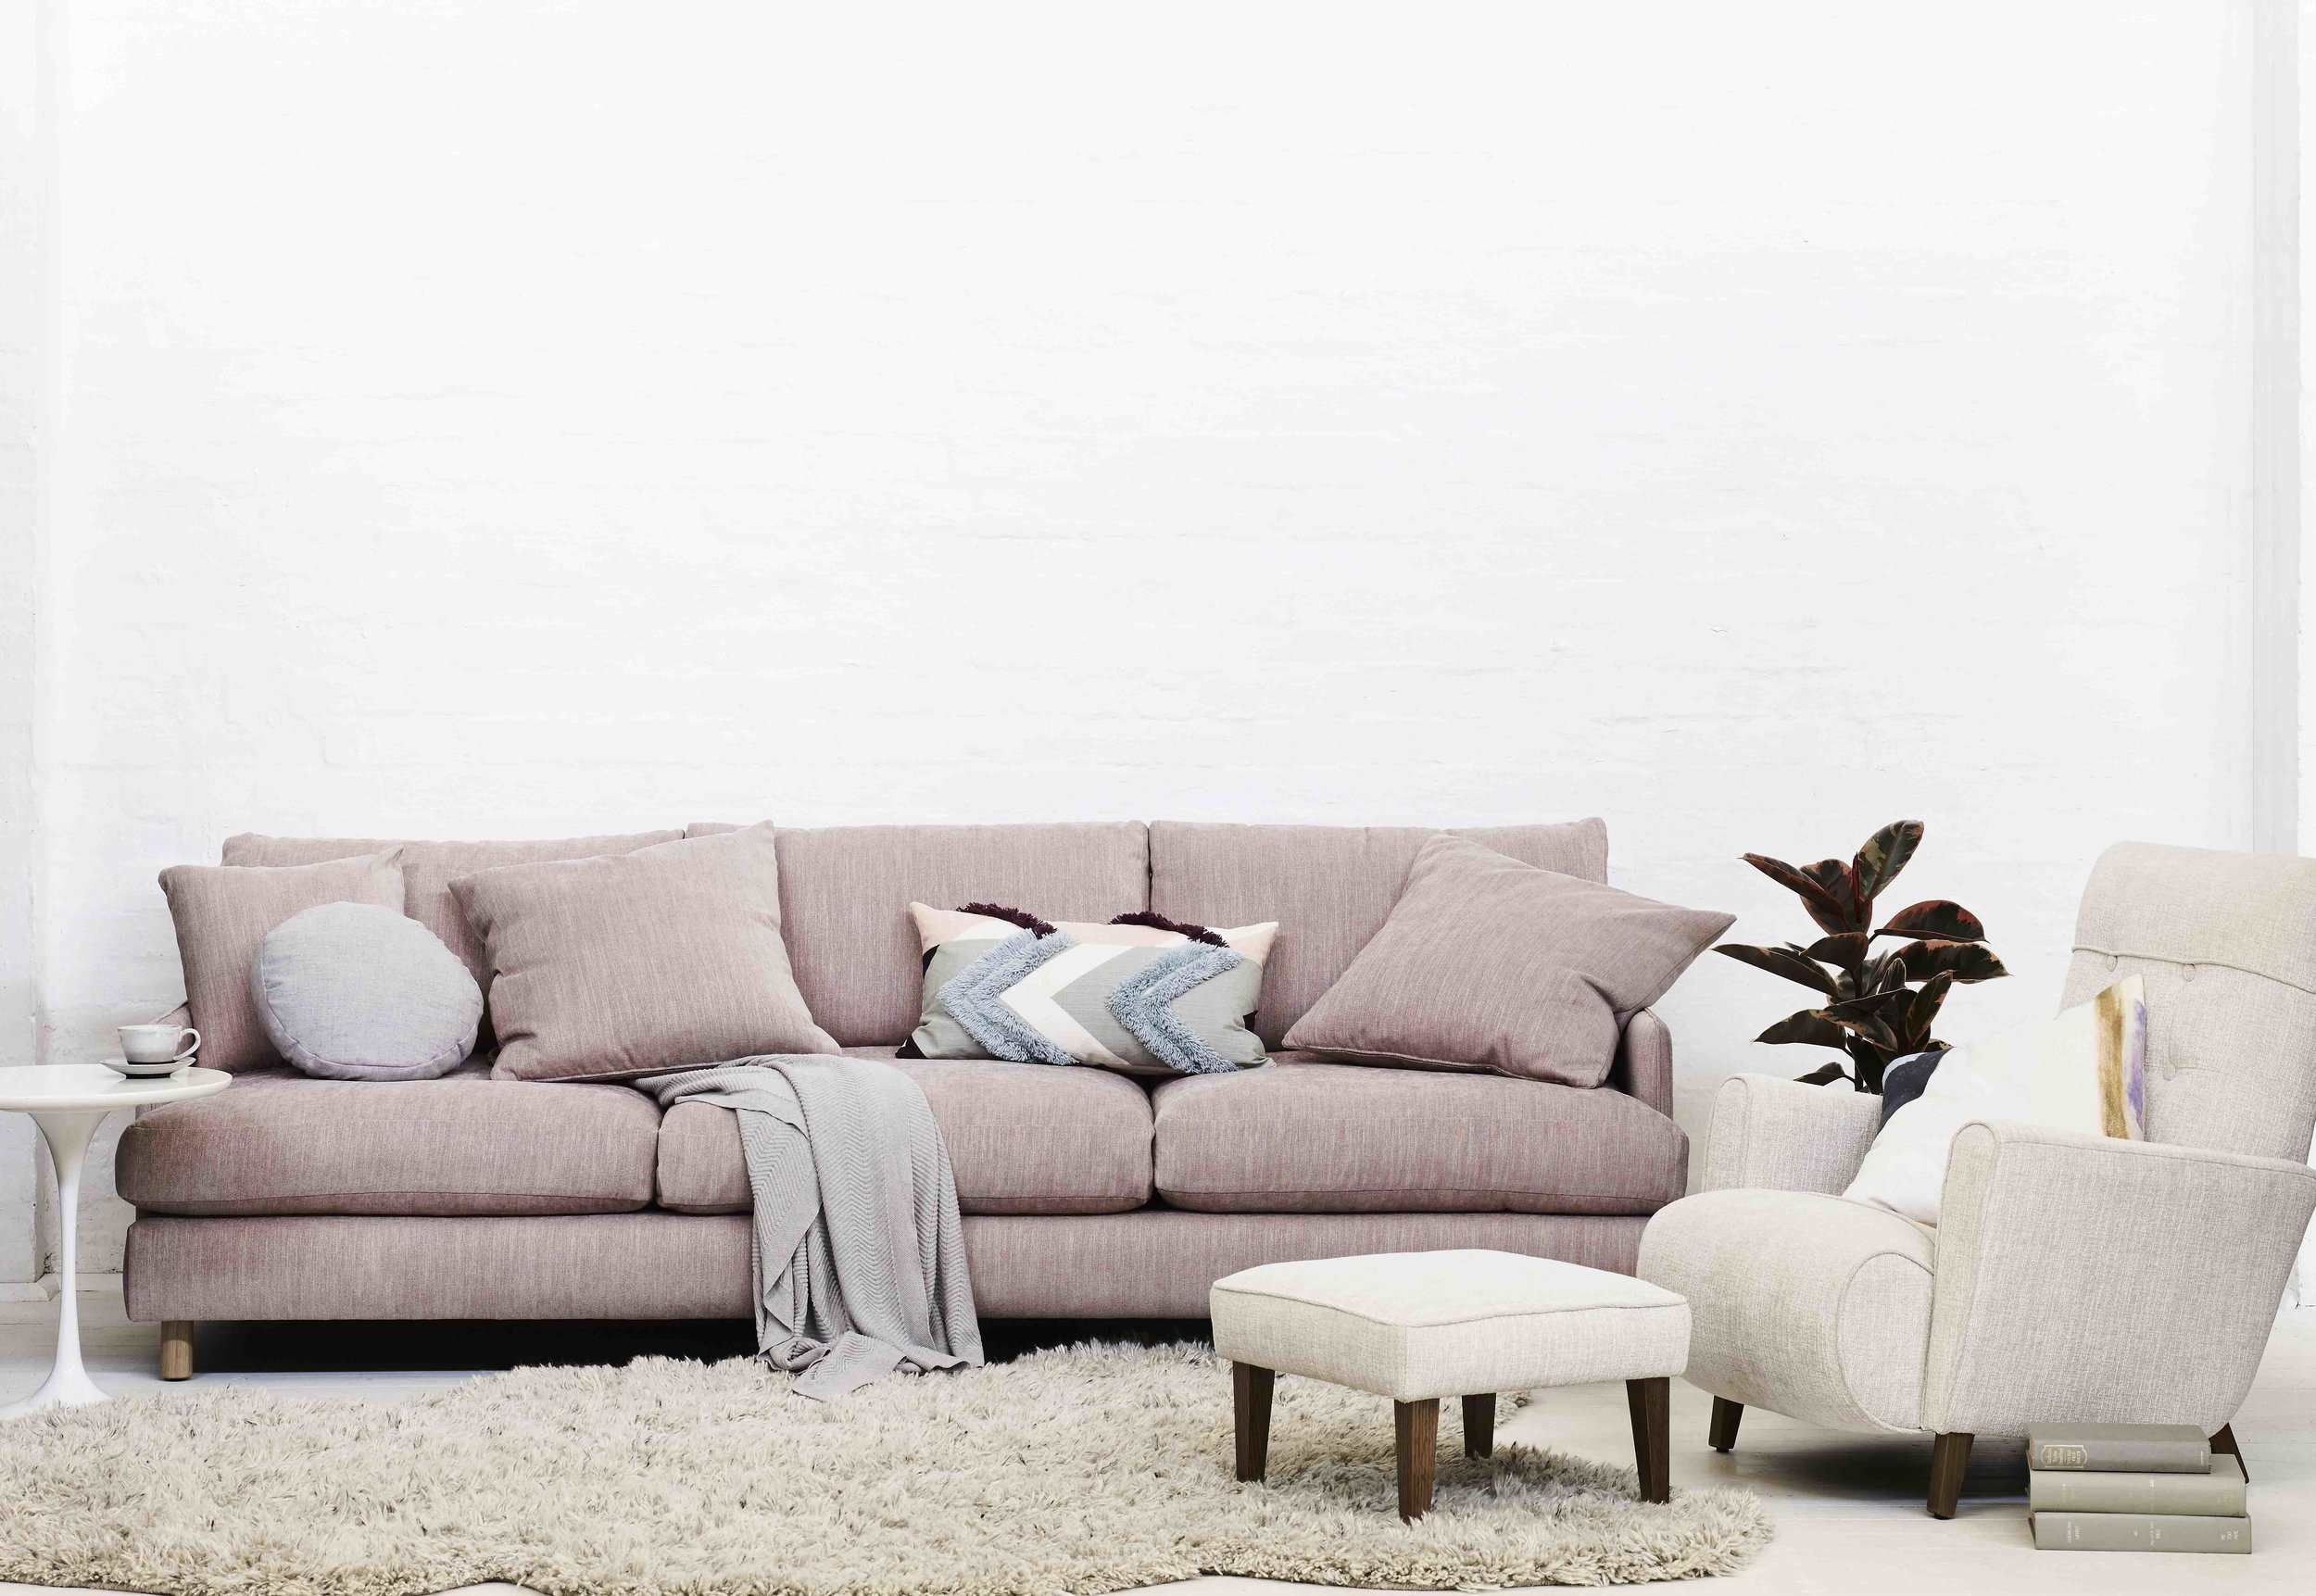 Molmic Rydell 4 seater sofa with Bonnie armchair and Ottoman.